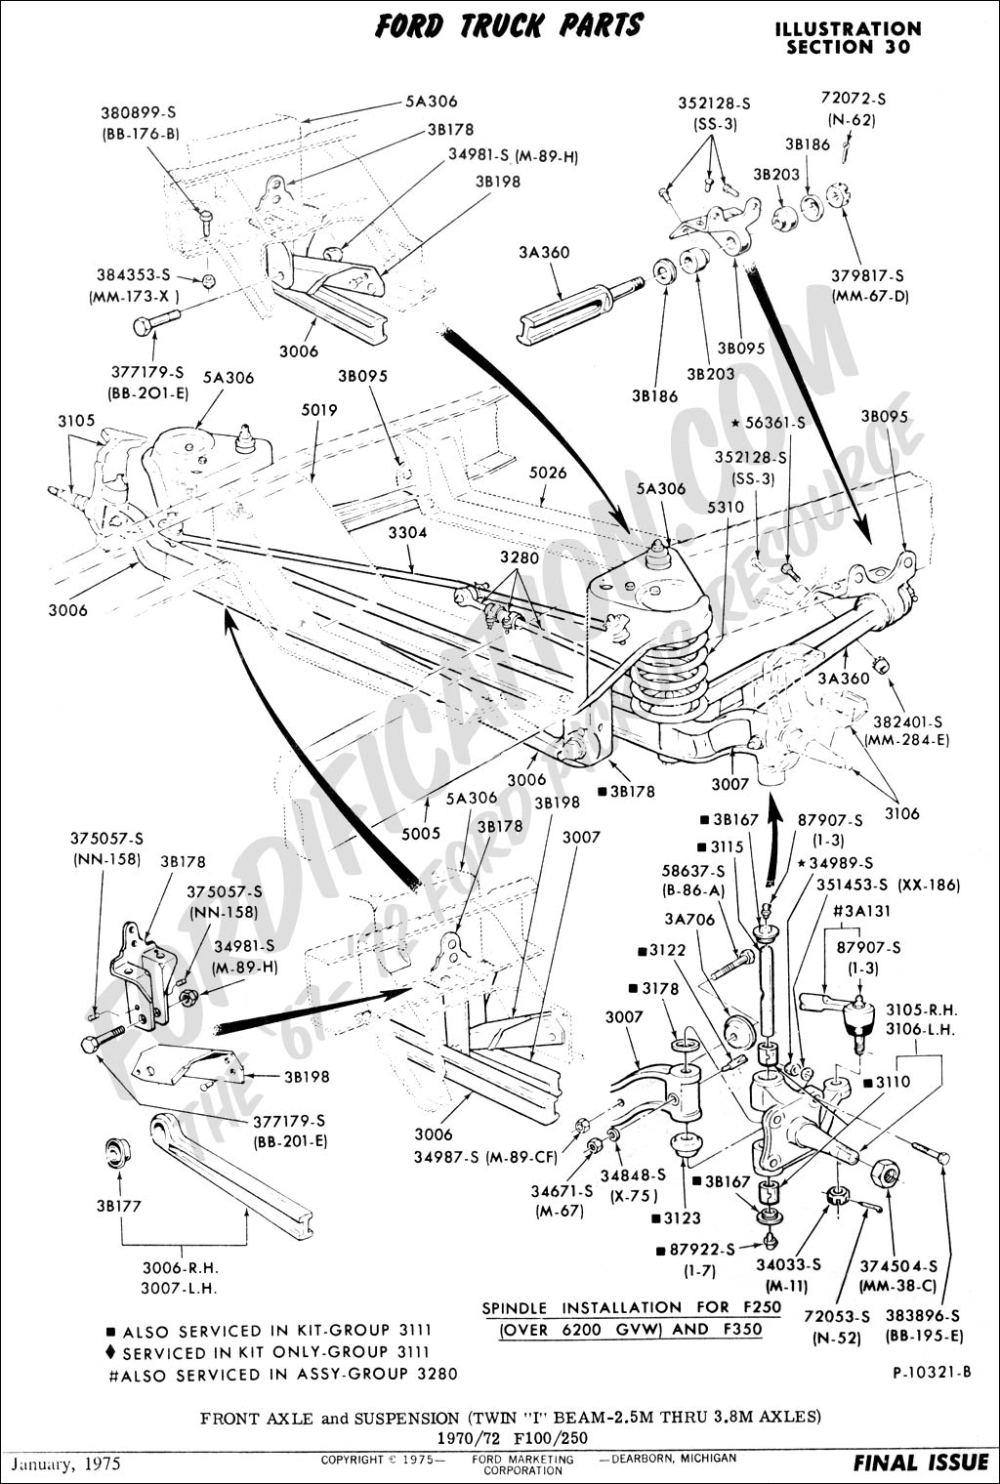 medium resolution of rear suspension diagram further 1996 ford f 250 4x4 front axle diagram wiring diagram today